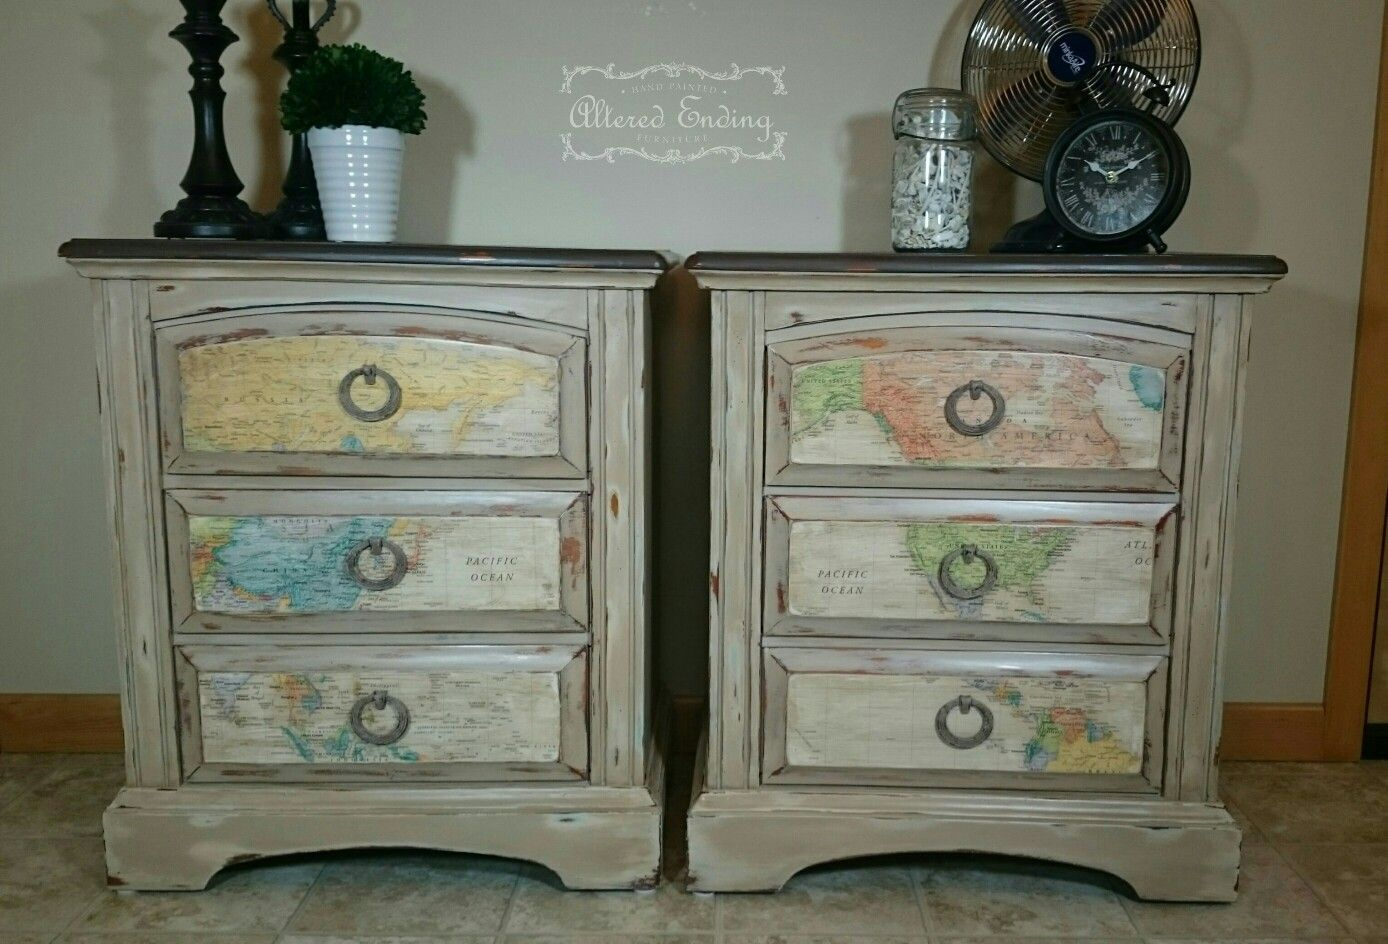 Map Decoupage Nightstands I Painted Them Using Heirloom Traditions Paint In Row House Irish Heirloom Traditions Paint Heirloom Traditions Painted Furniture